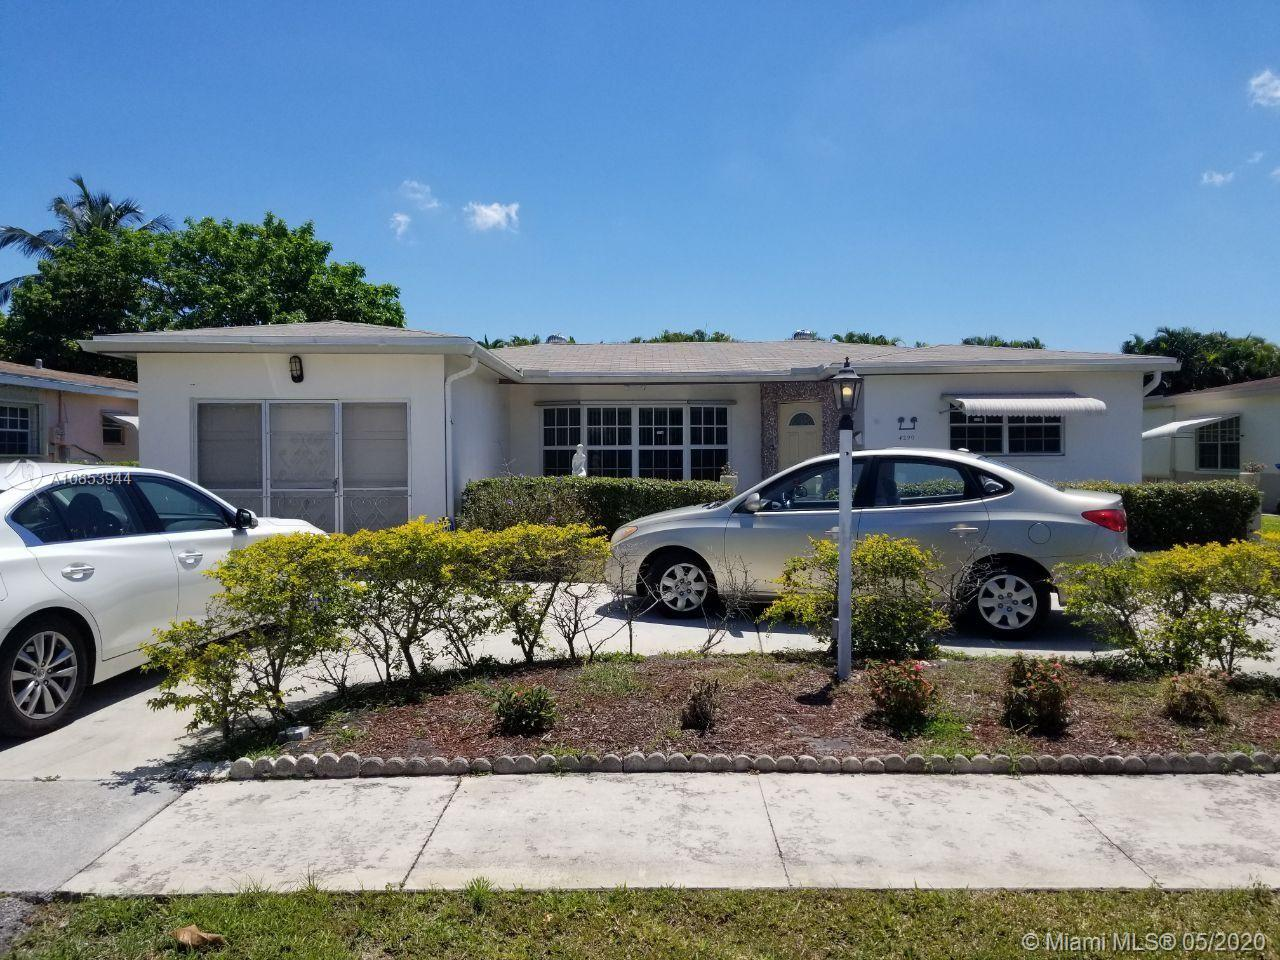 4290 NW 41st Ter, Lauderdale Lakes, Florida 33319, 3 Bedrooms Bedrooms, ,2 BathroomsBathrooms,Residential,For Sale,4290 NW 41st Ter,A10853944